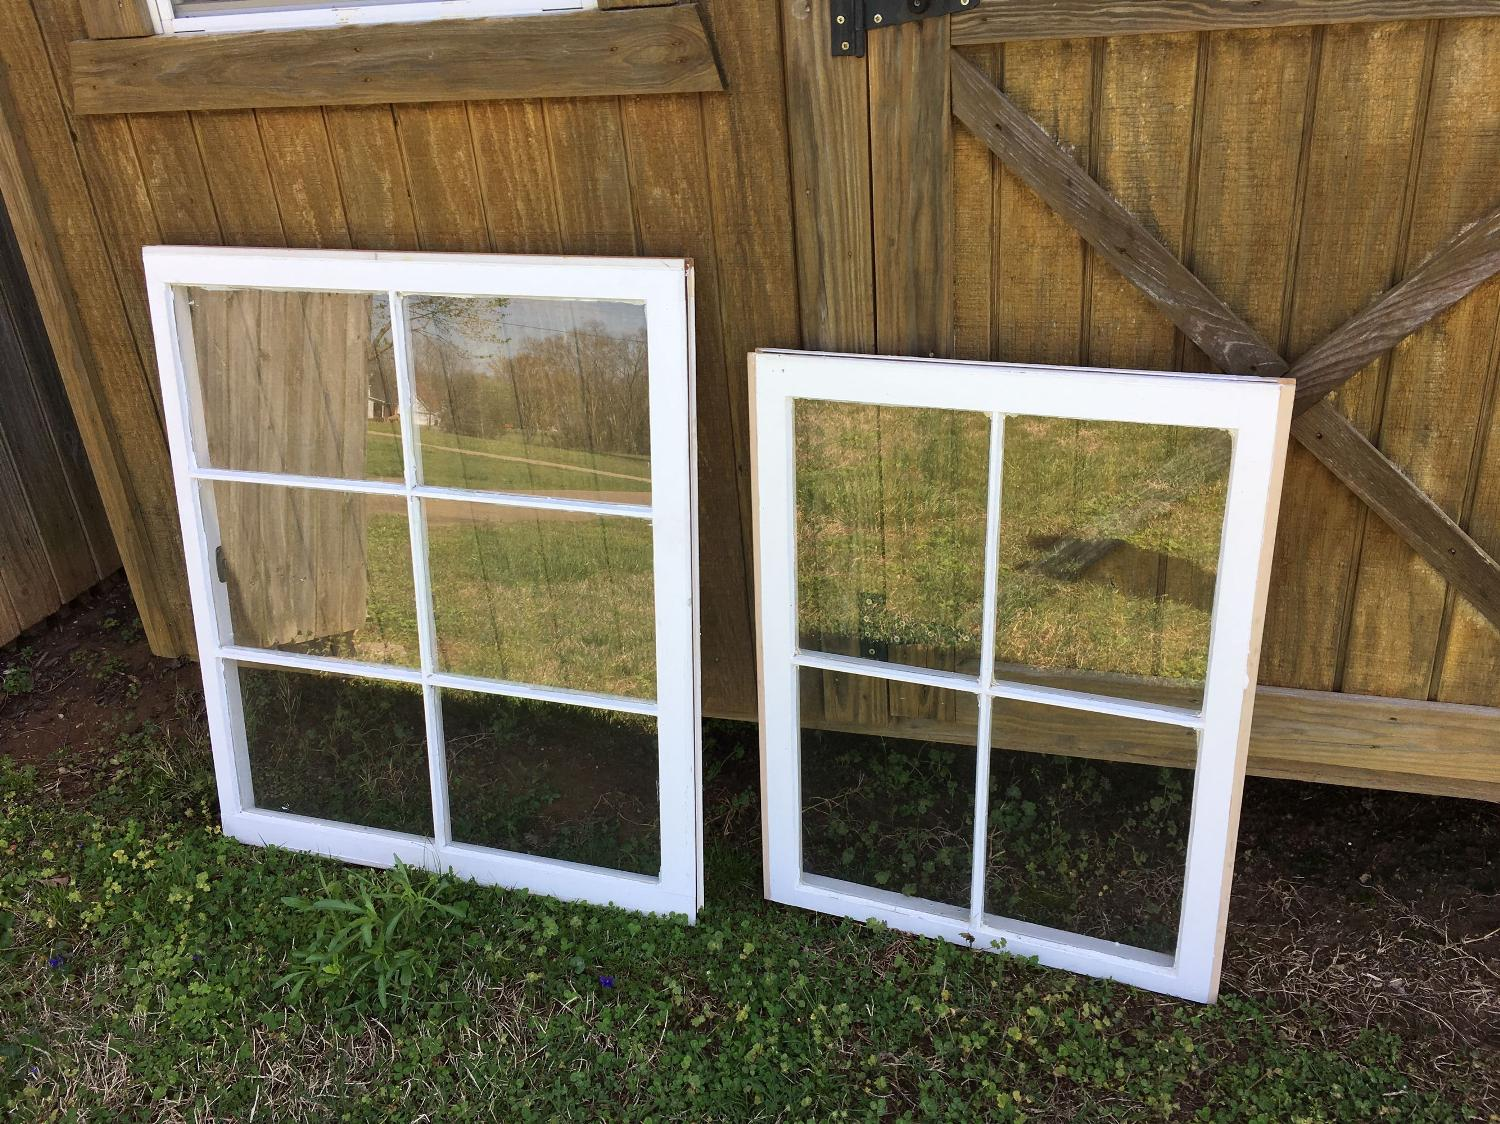 Best old wooden windows for sale in murfreesboro for Wood windows for sale online